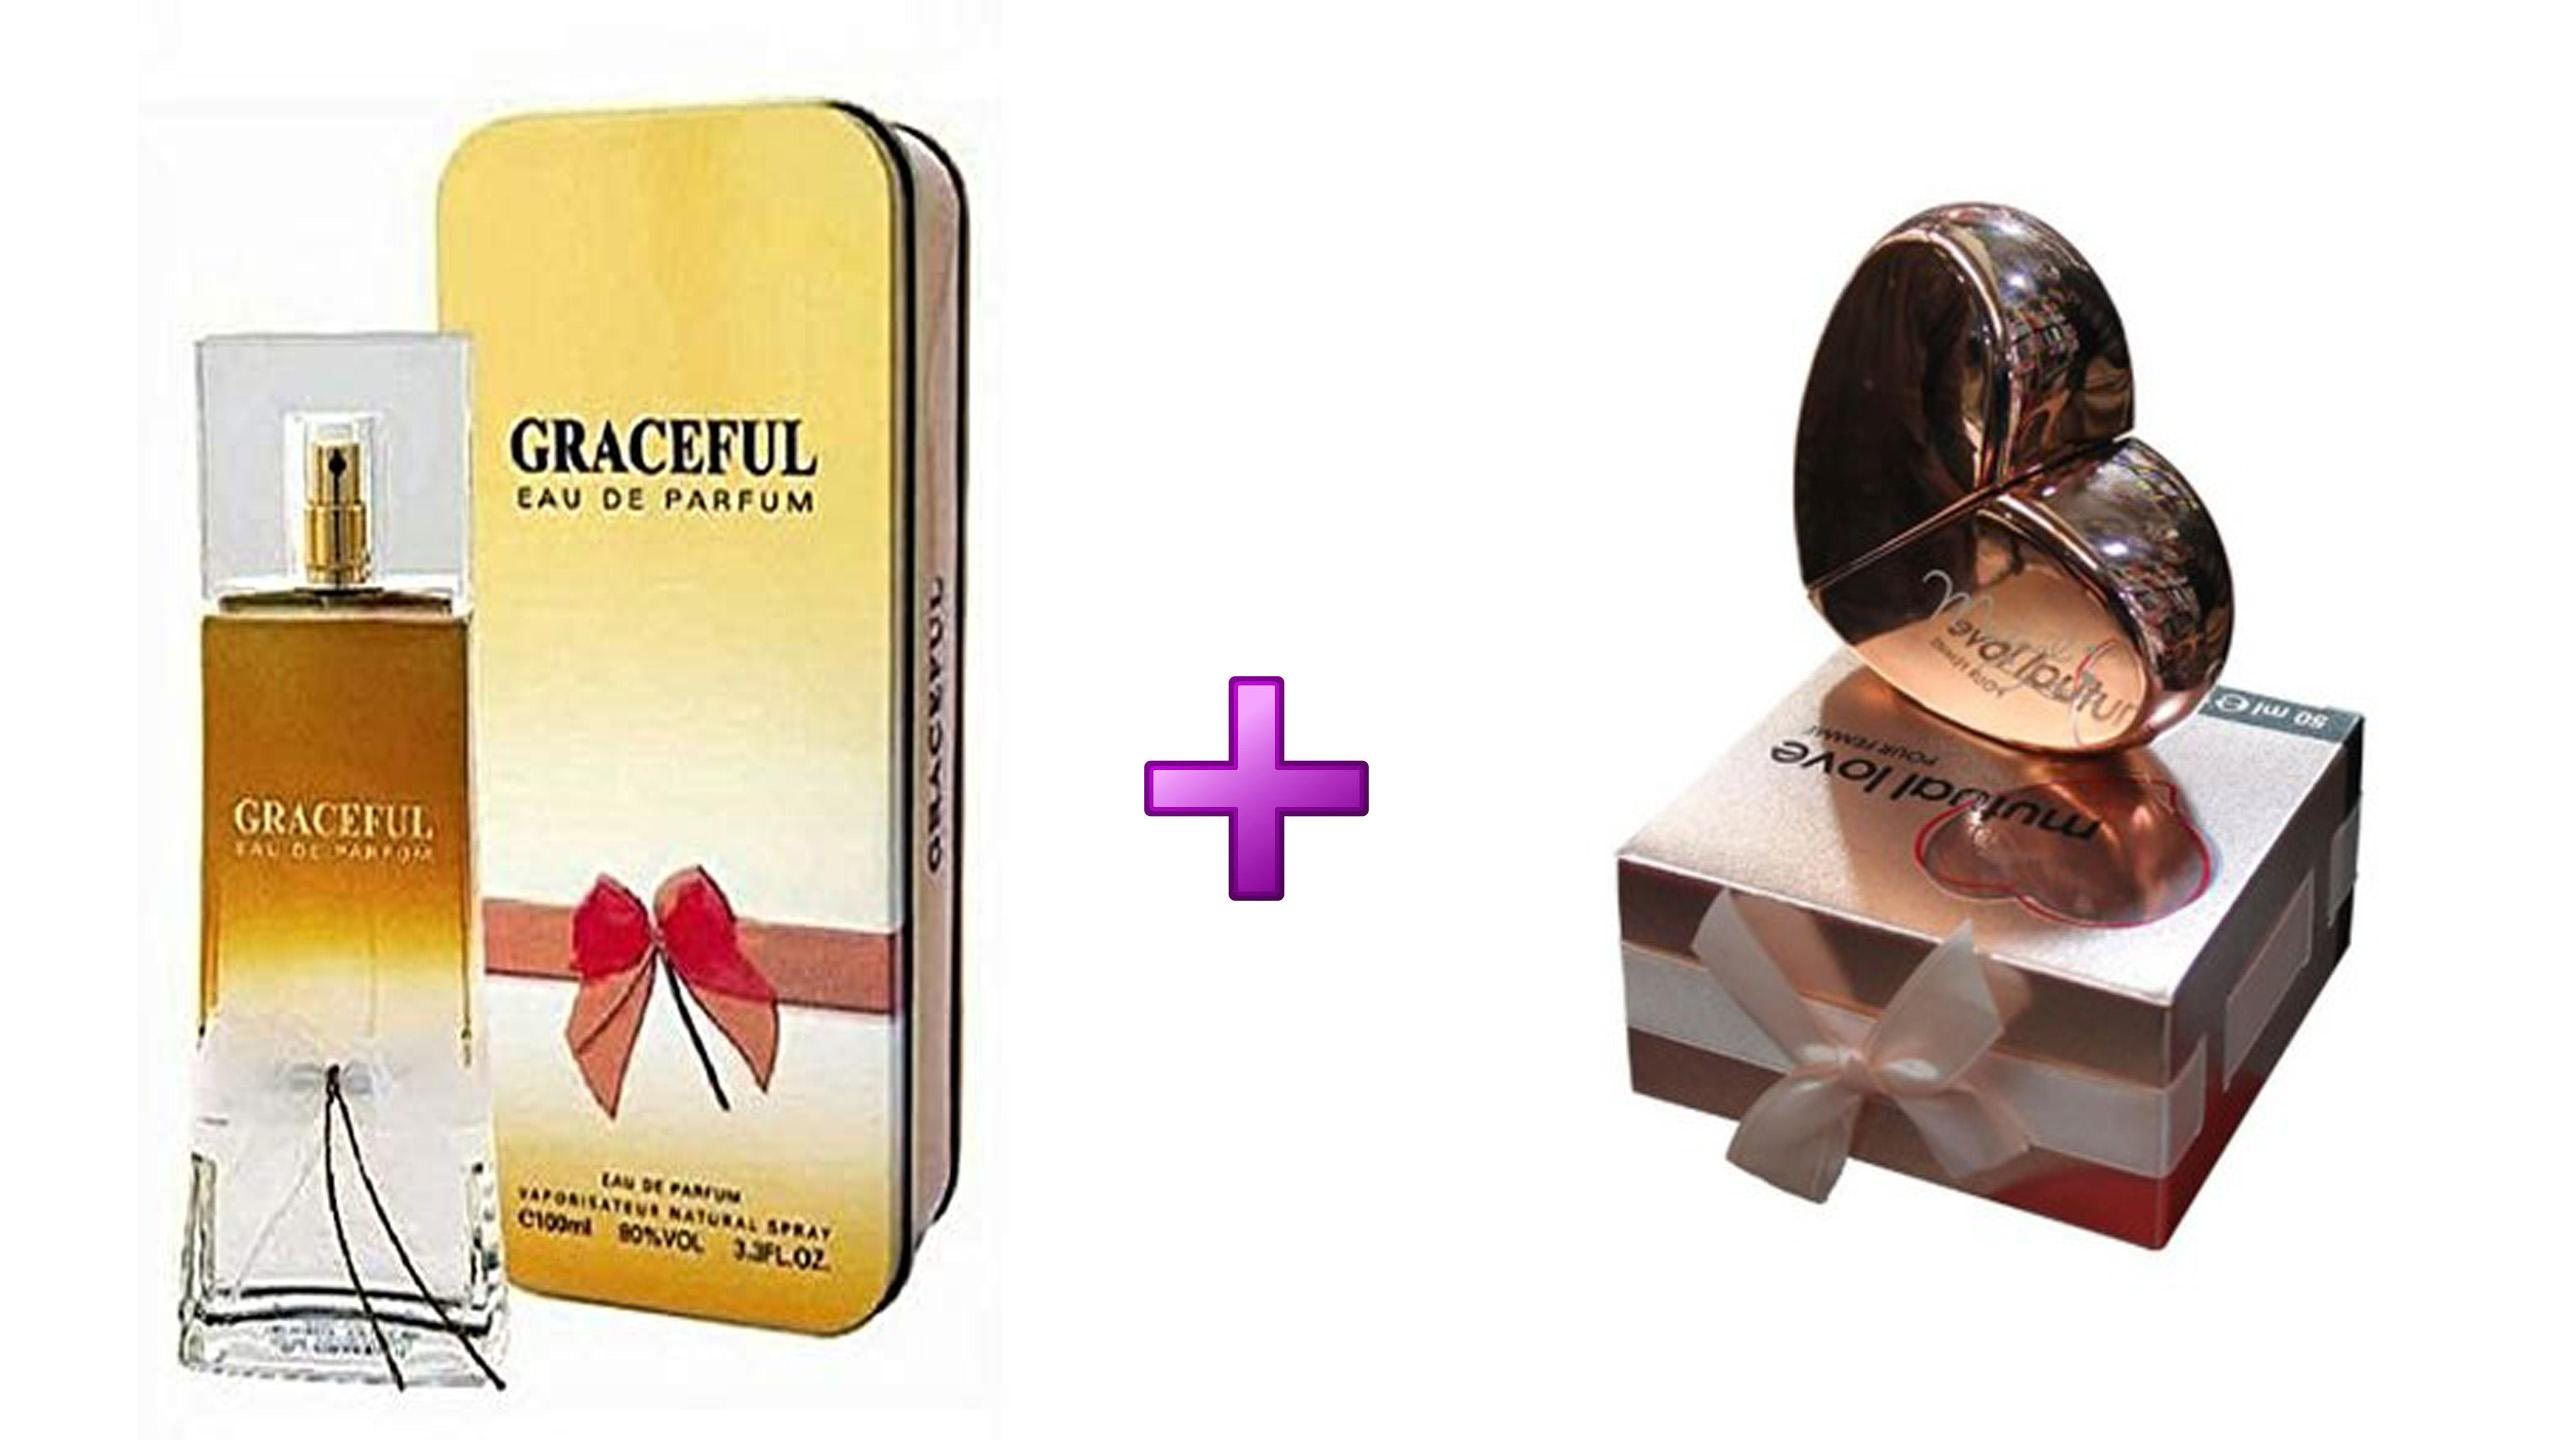 Gift Pack For Girls Graceful Mutual Love Gold Perfumes Buy